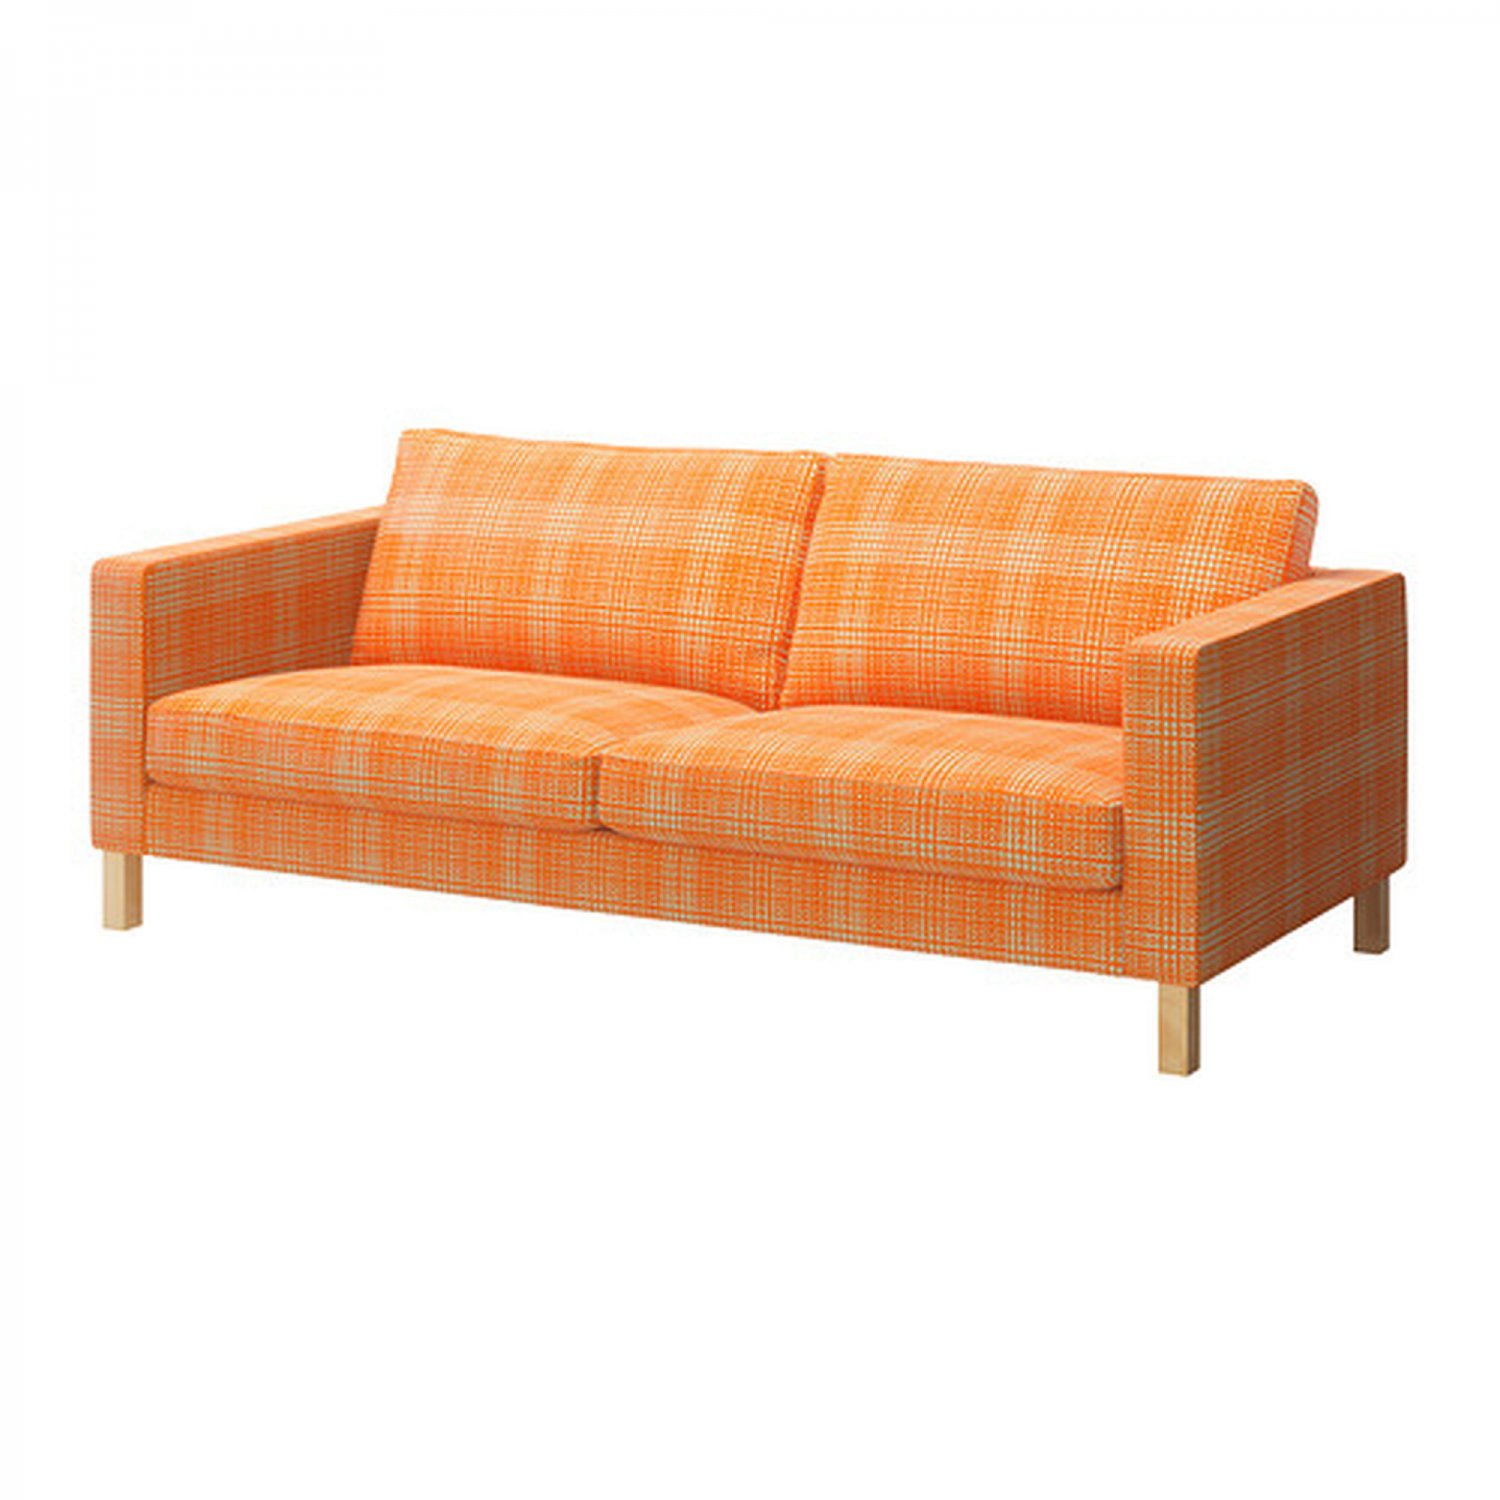 Ikea karlstad 3 seat sofa slipcover cover husie orange print for Sofa orange